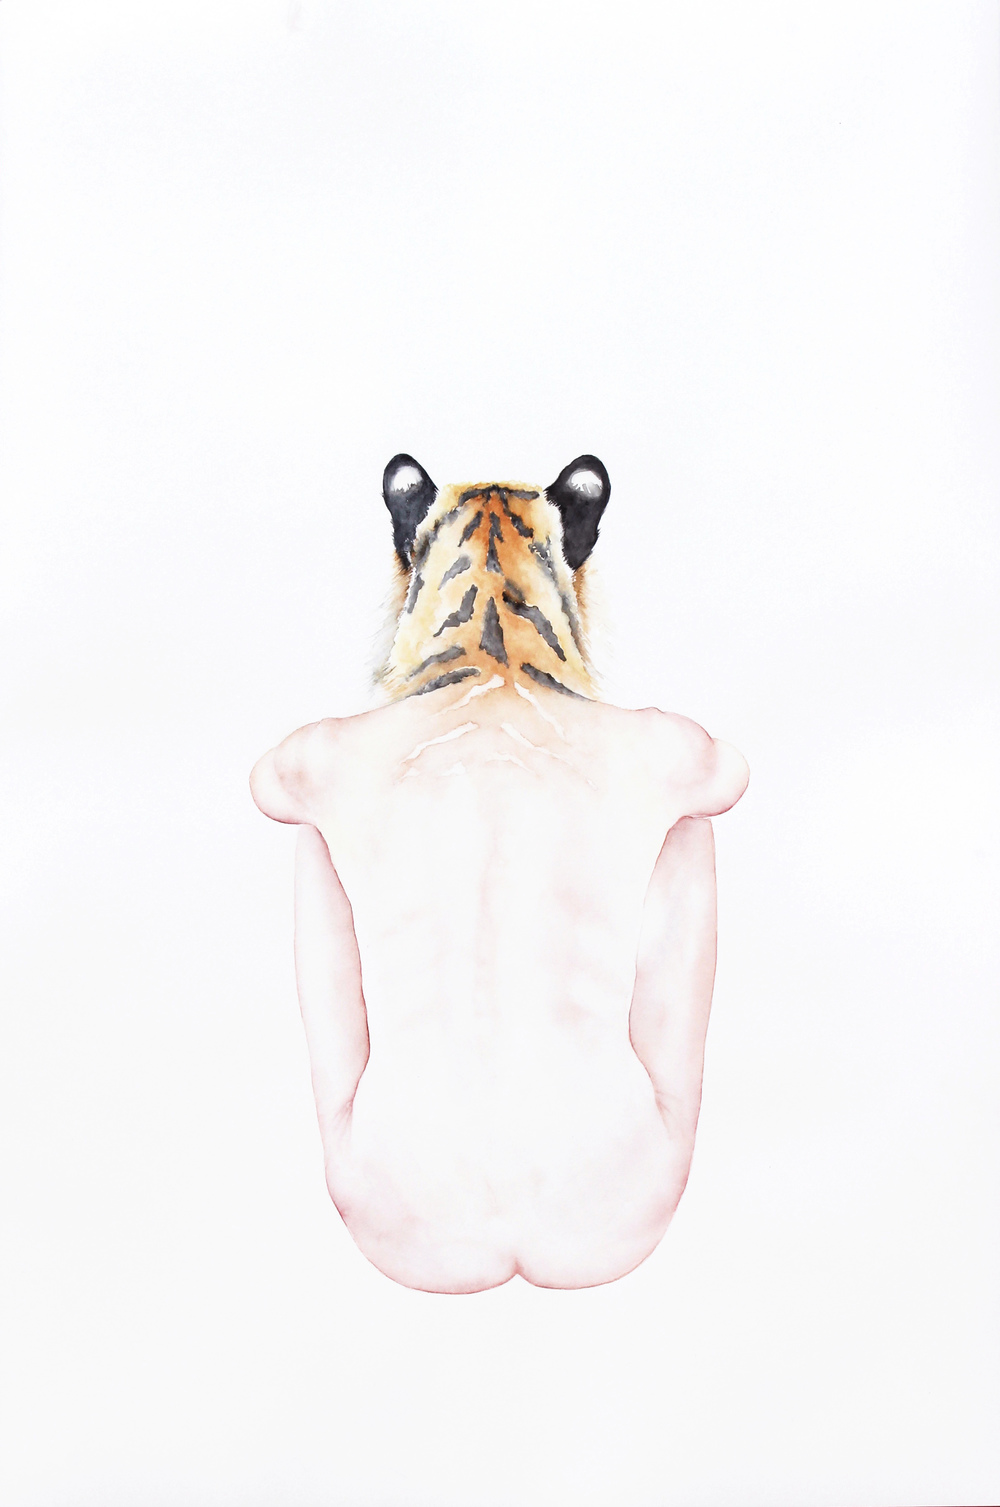 Tigress , 2016, Watercolor on paper, 26 1/4 × 18 in (66.7 × 45.7 cm)